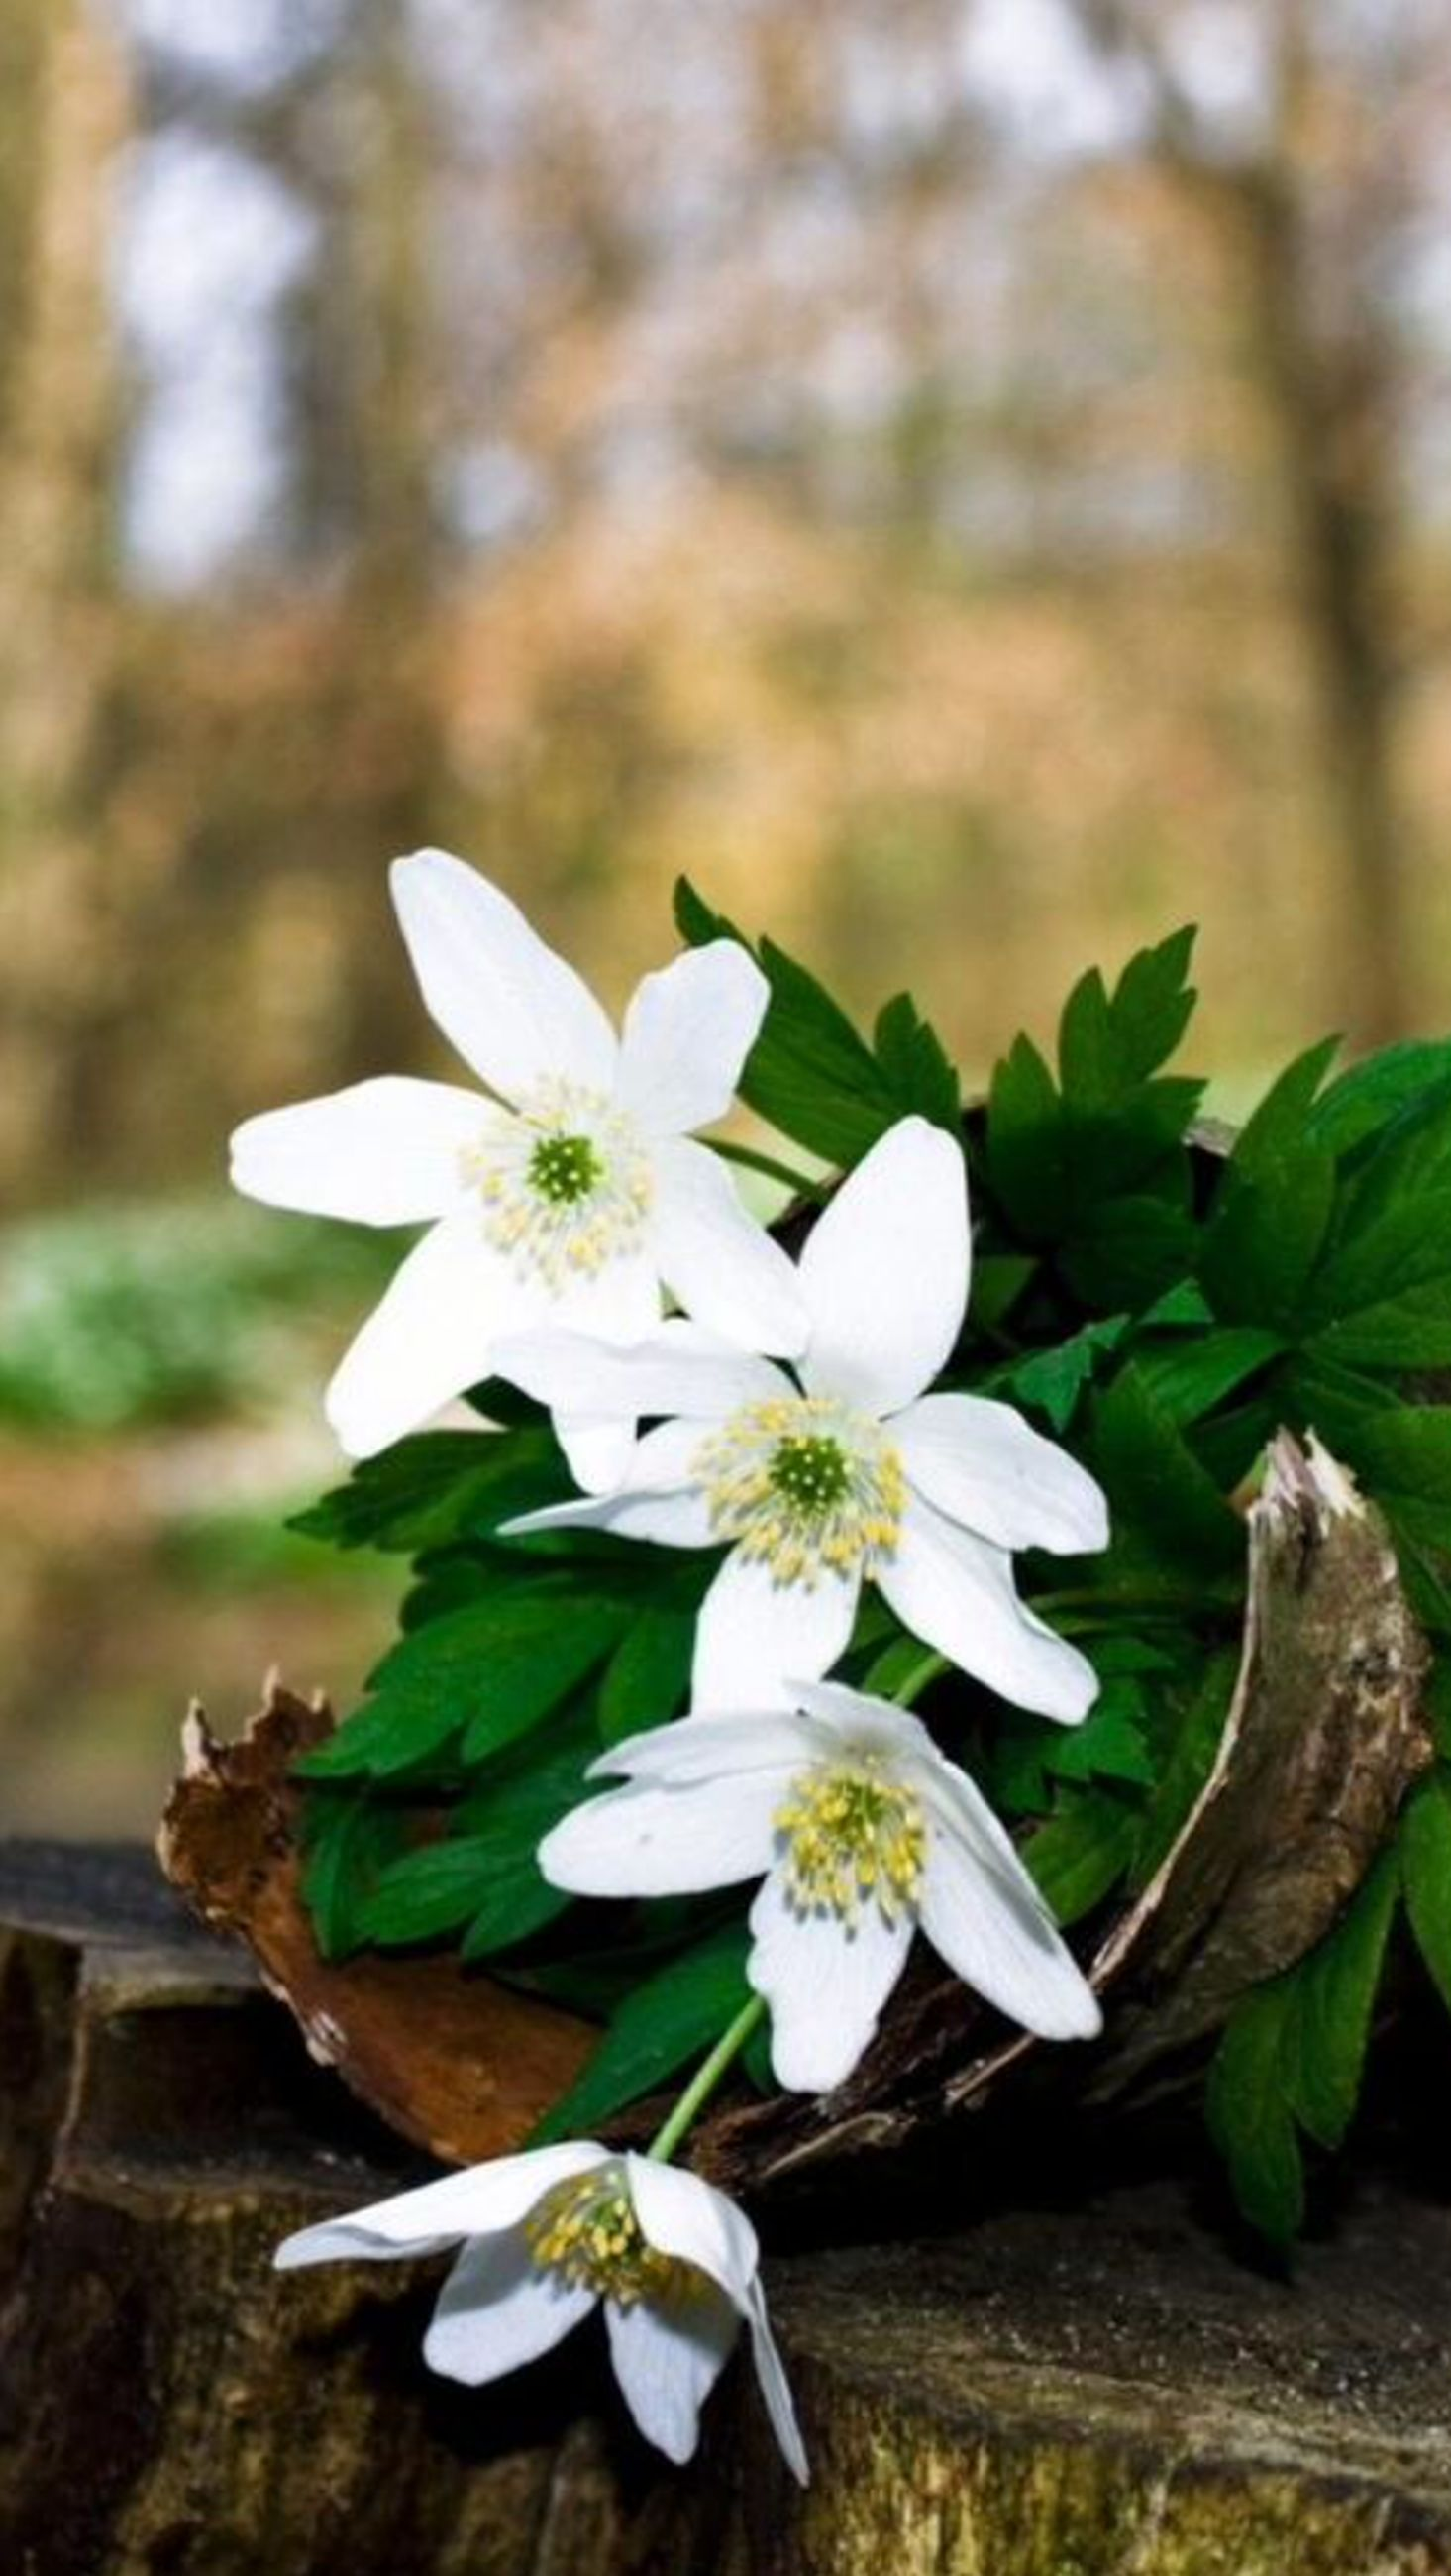 flower, petal, white color, freshness, fragility, flower head, growth, close-up, beauty in nature, focus on foreground, nature, stamen, pollen, leaf, plant, blooming, white, in bloom, blossom, high angle view